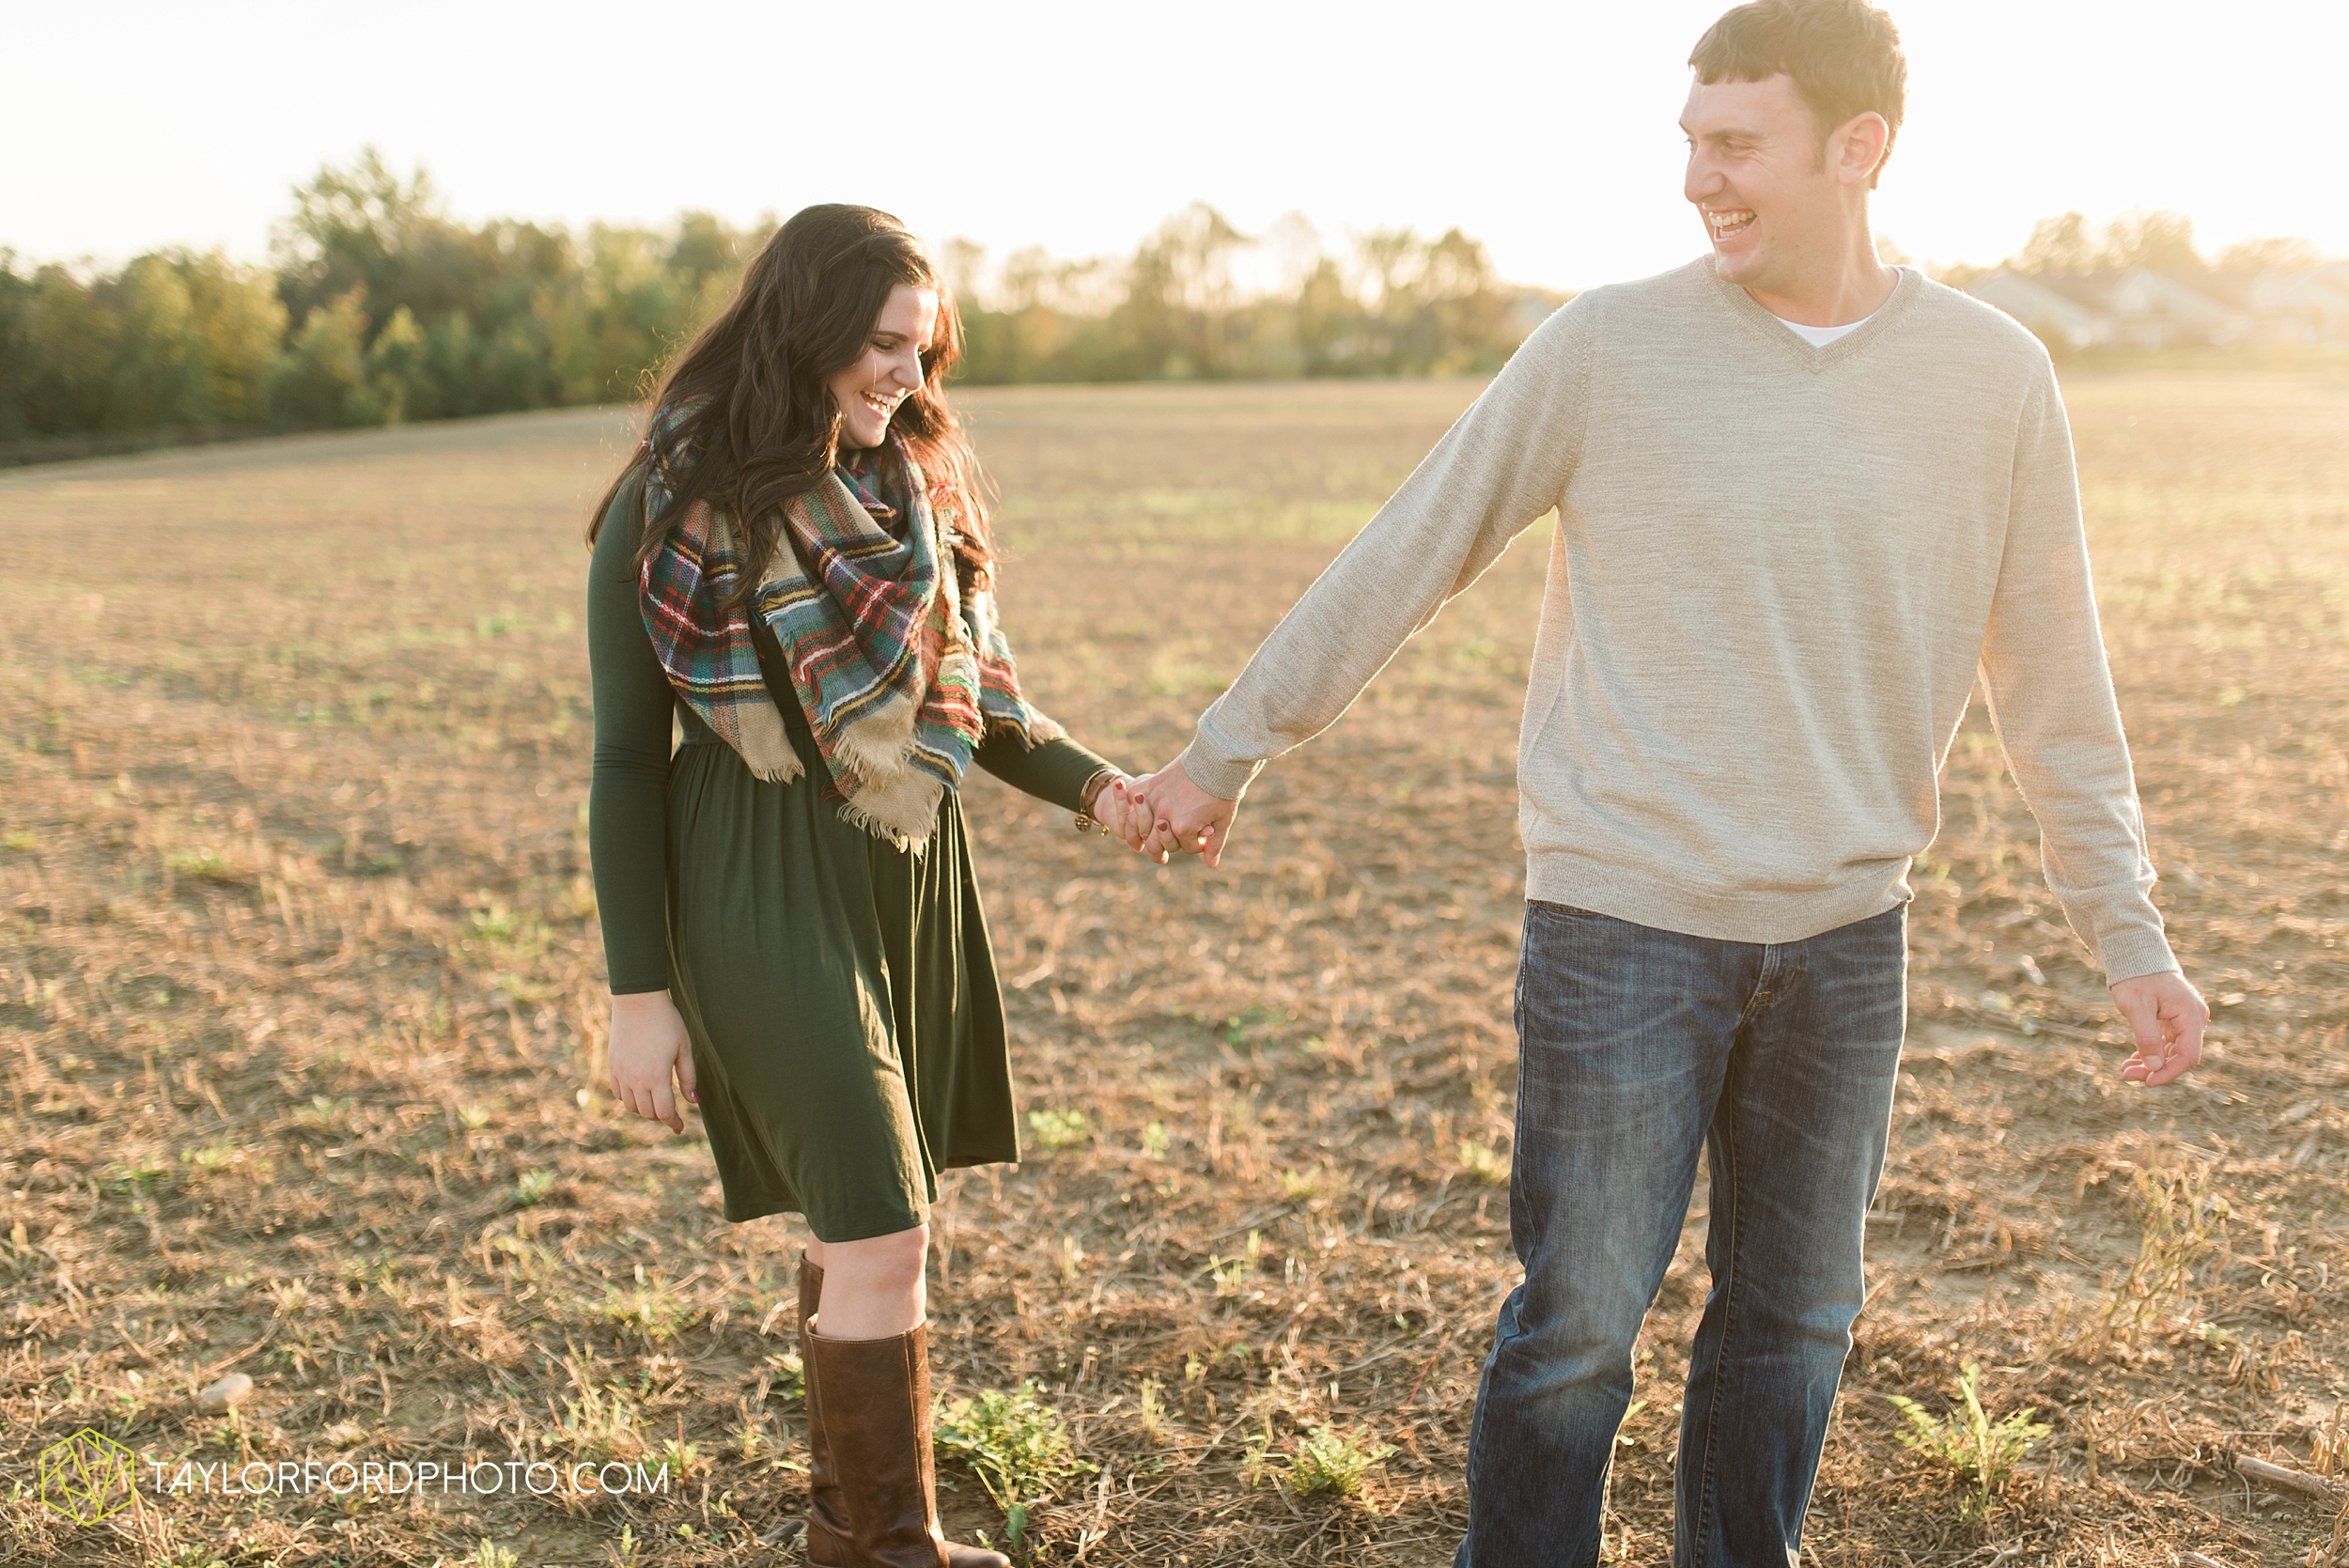 fort-wayne-indiana-engagement-wedding-photographer-Taylor-Ford-Photography-salomon-farm-park_3579.jpg